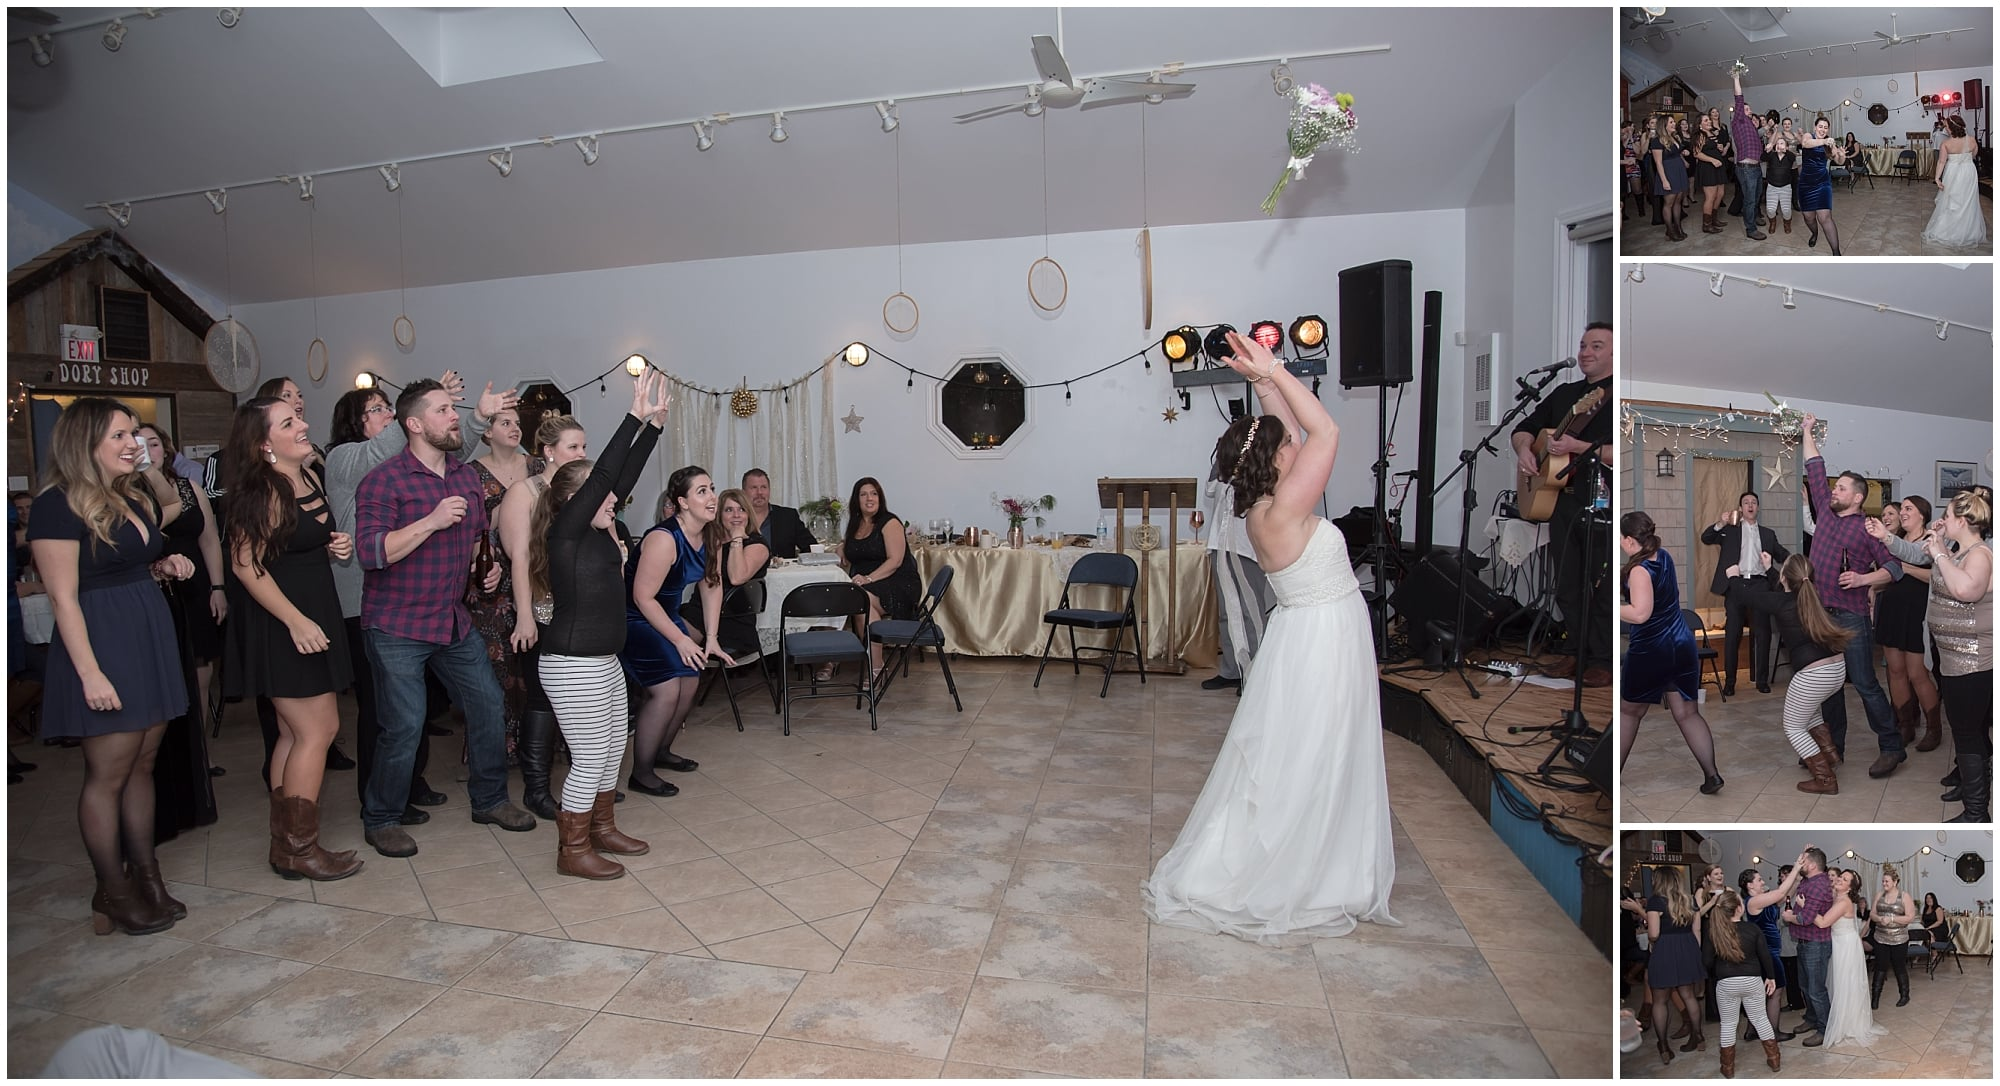 The bride throws her bridal bouquet during the bouquet toss at her Fisherman's Cove wedding.